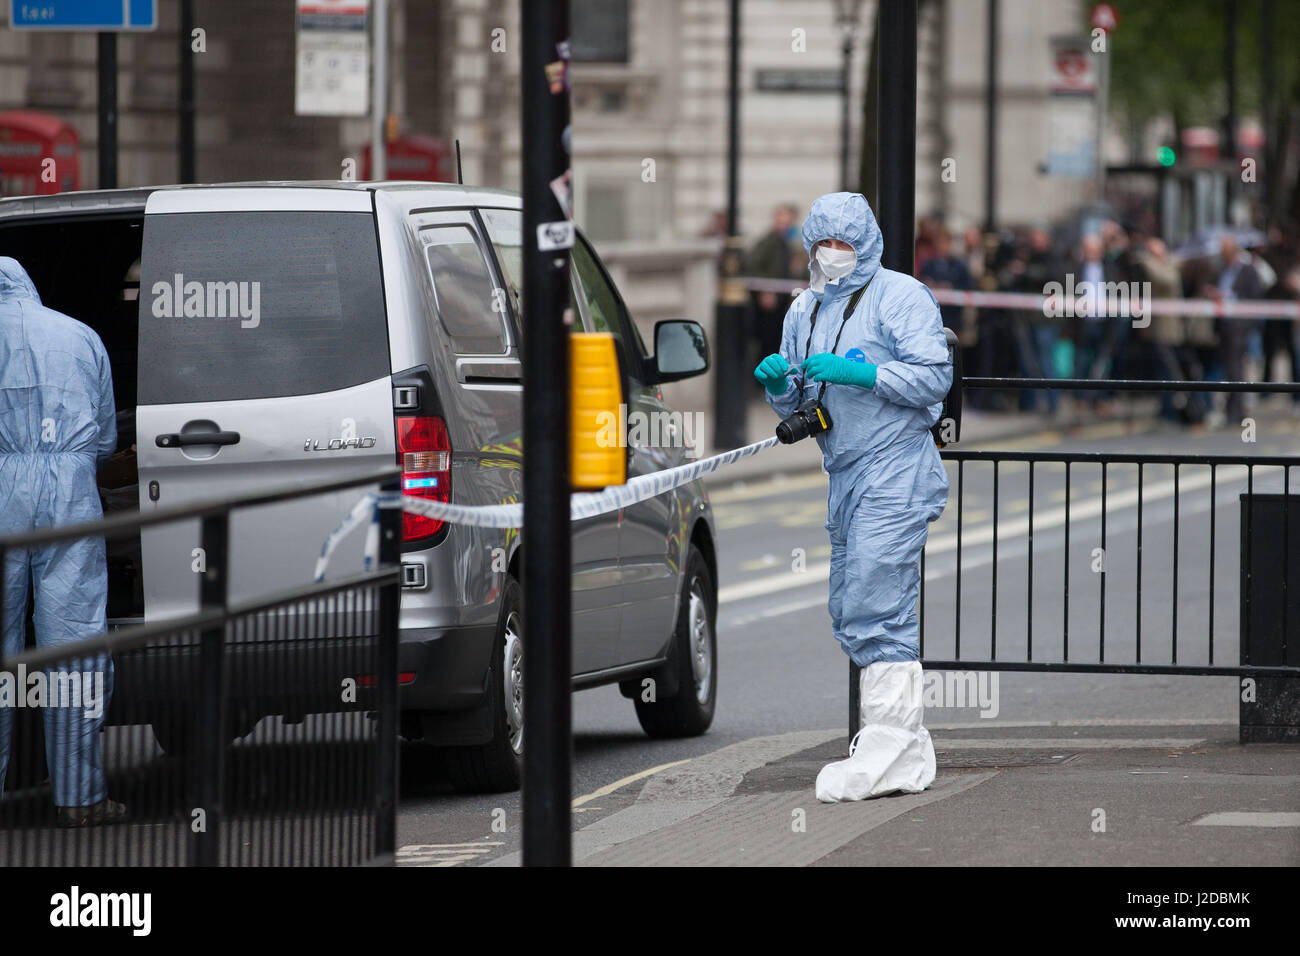 London, UK. 27th April, 2017. Police forensic officers carry out investigations within a cordon around the area - Stock Image